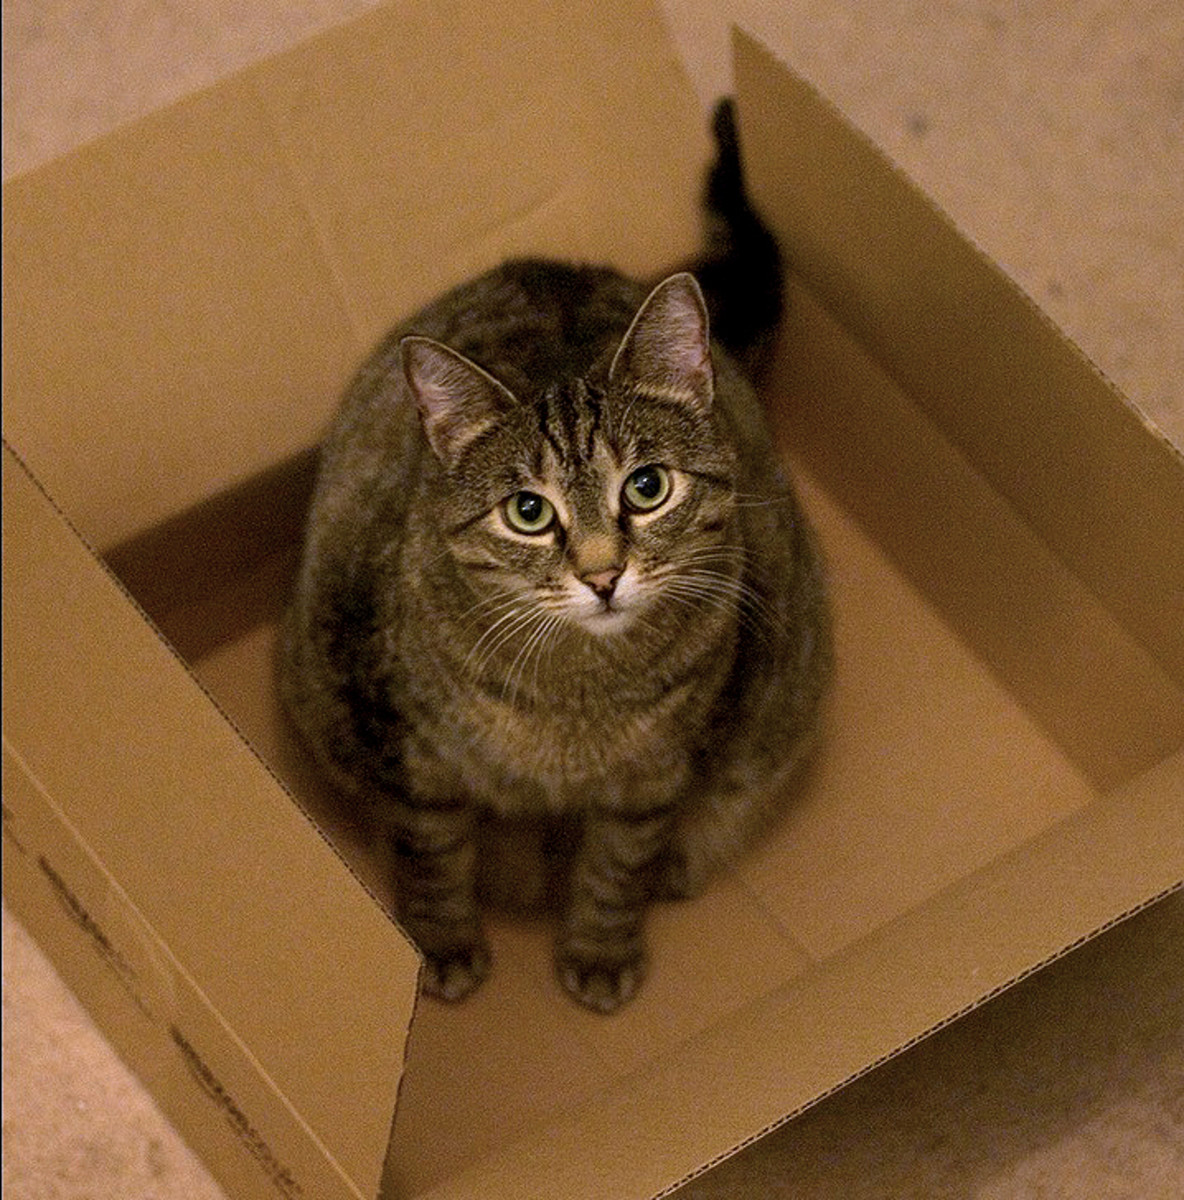 Box cat is getting ready to be shipped out.